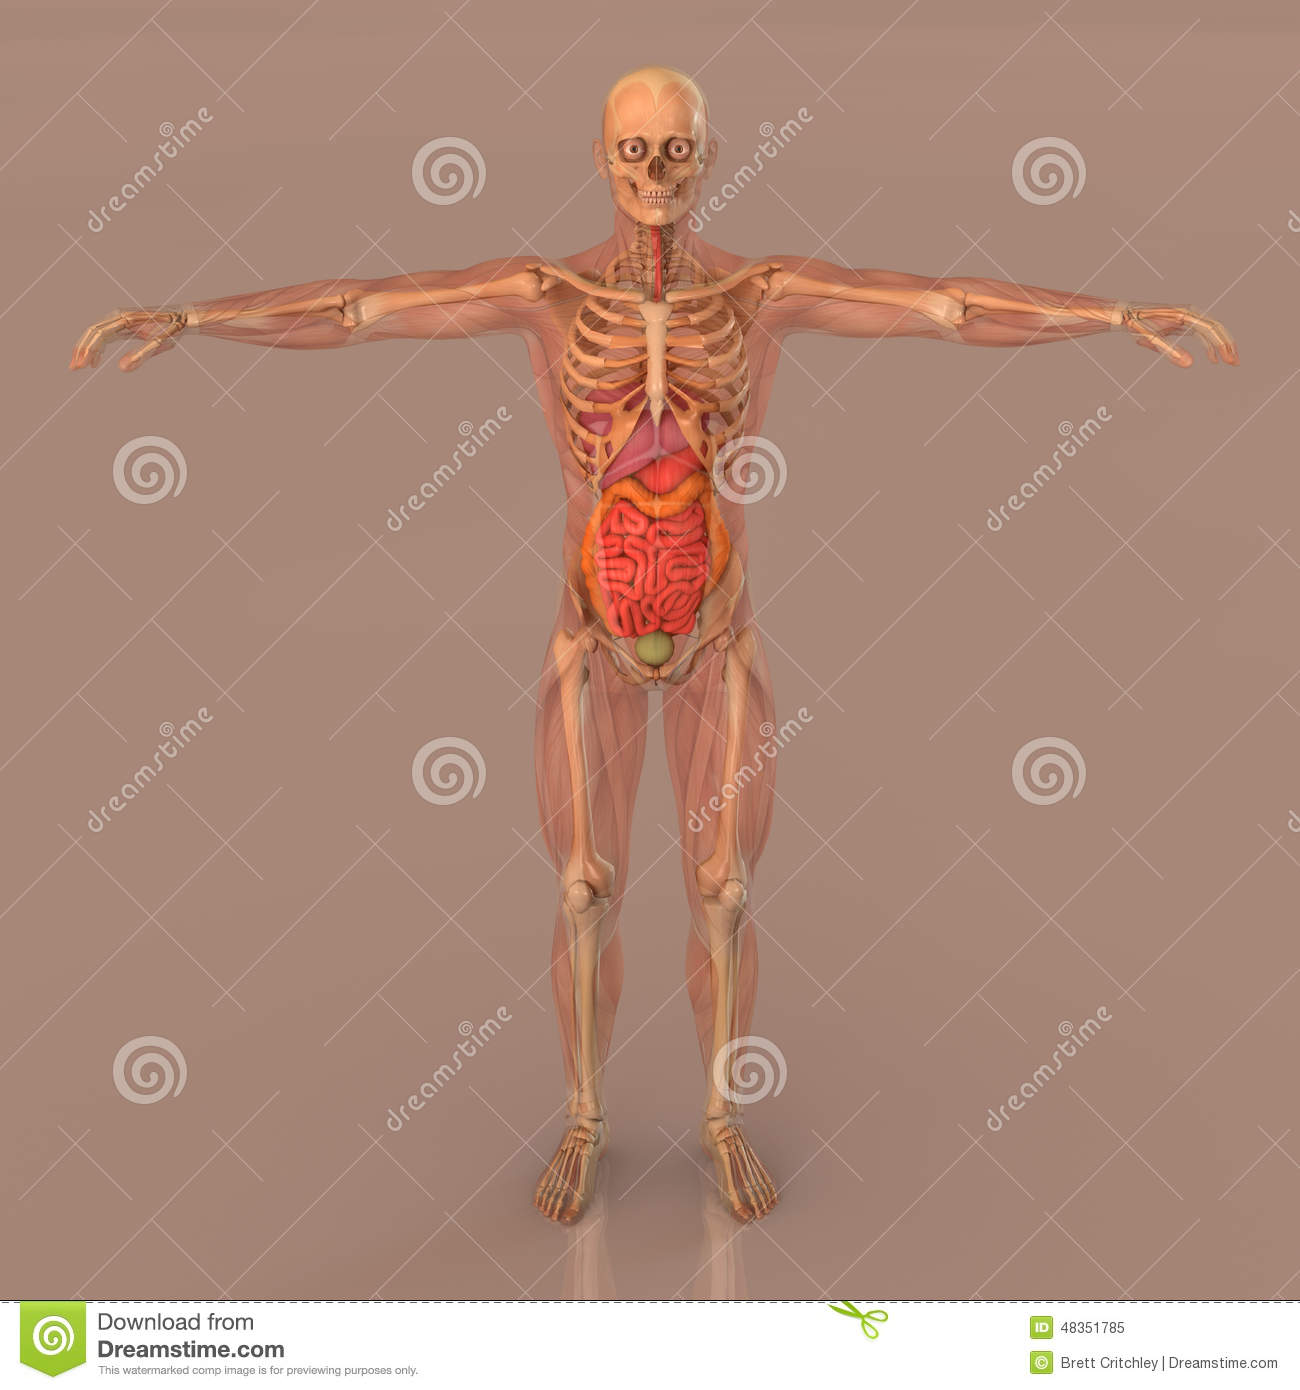 Human Anatomy Full Body Skeleton Stock Illustration - Illustration ...